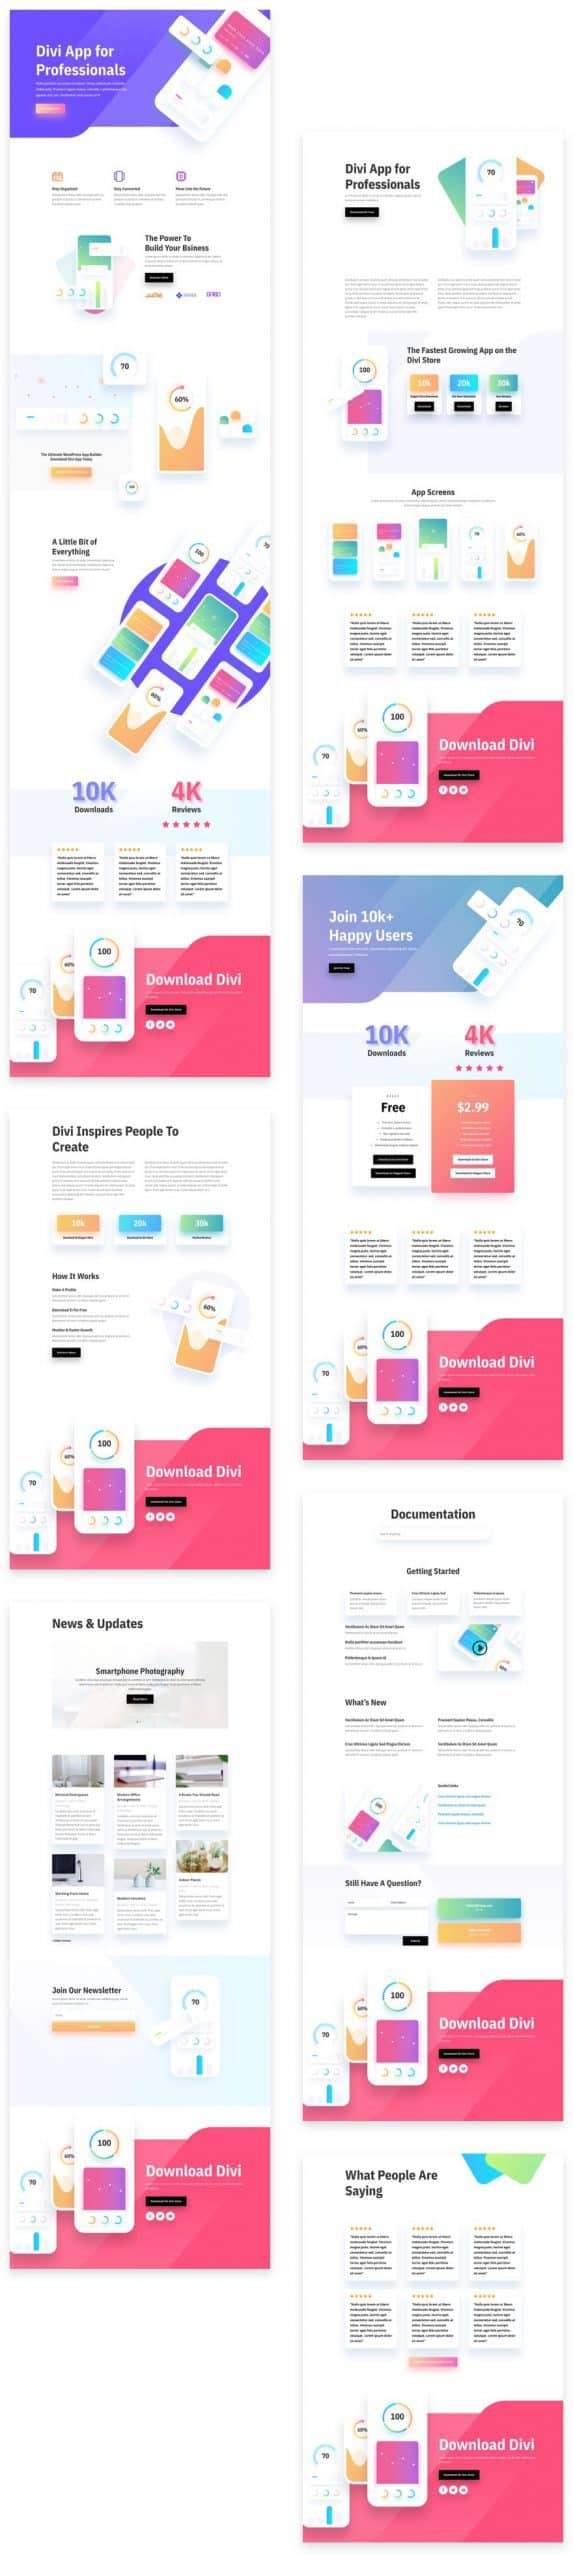 Mobile App Divi Layout Pack